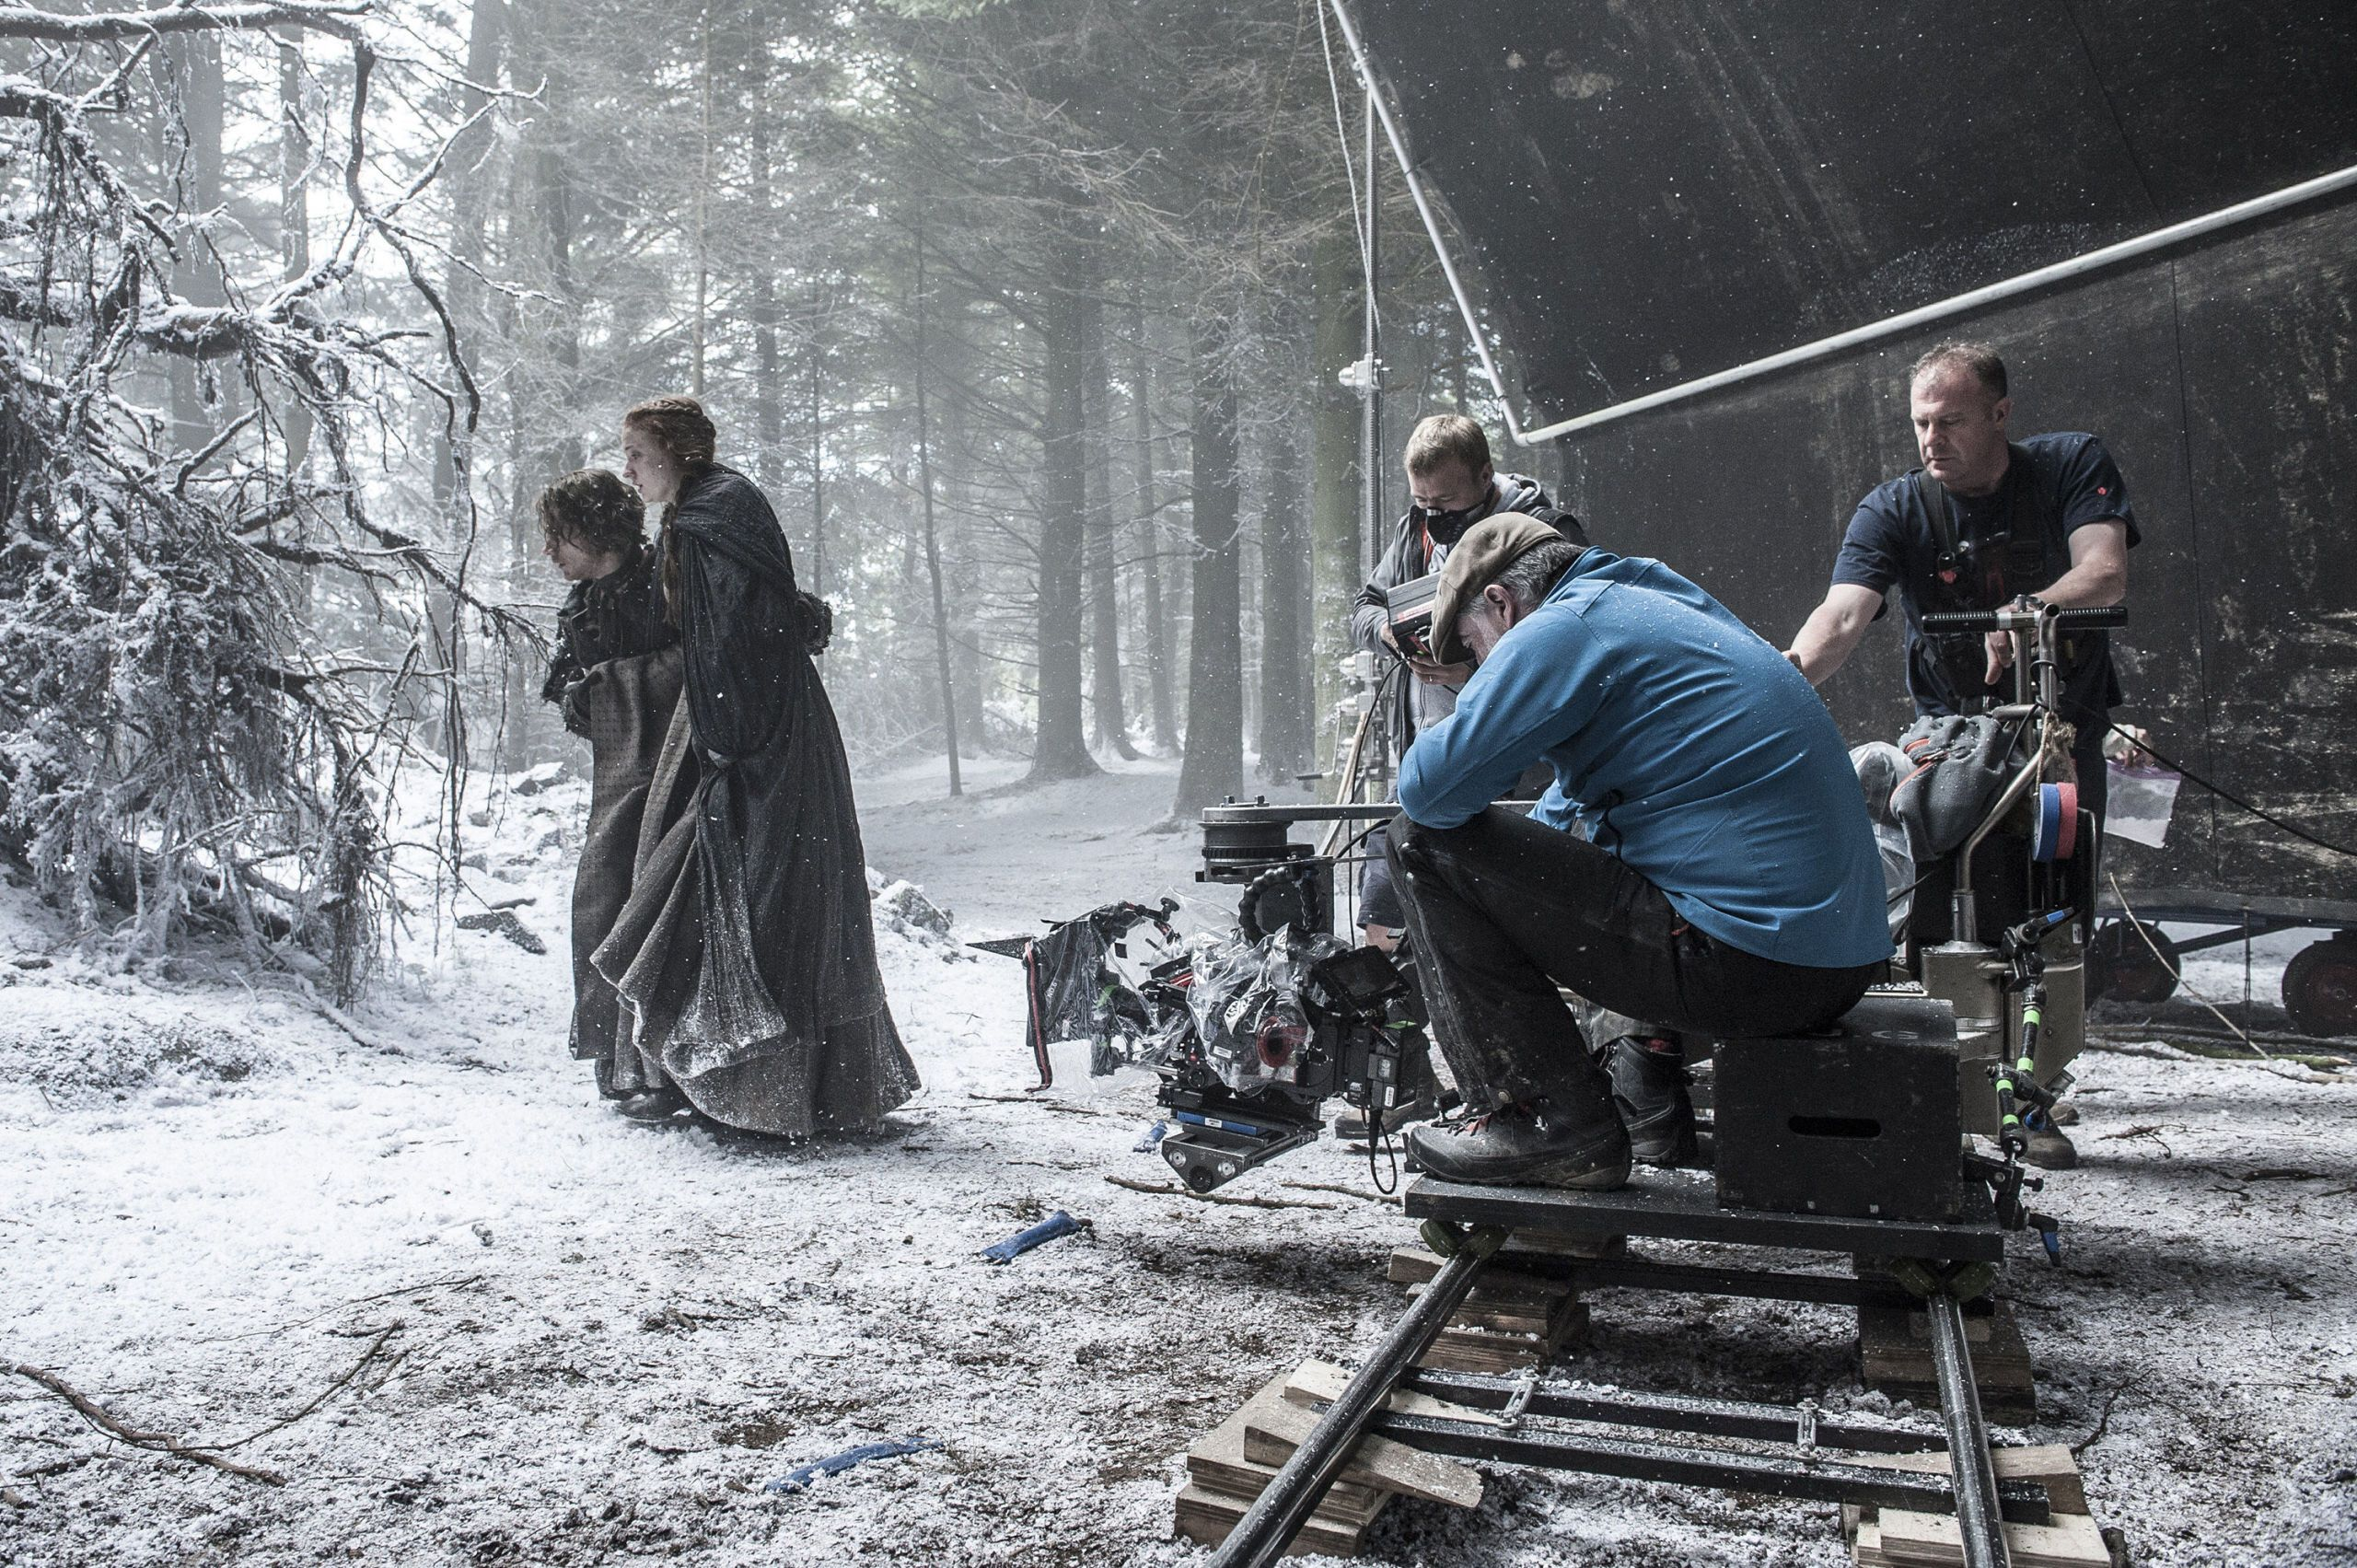 Exclusive: The 'Game of Thrones' Director of Cinematography Just Revealed All His Secrets to Us